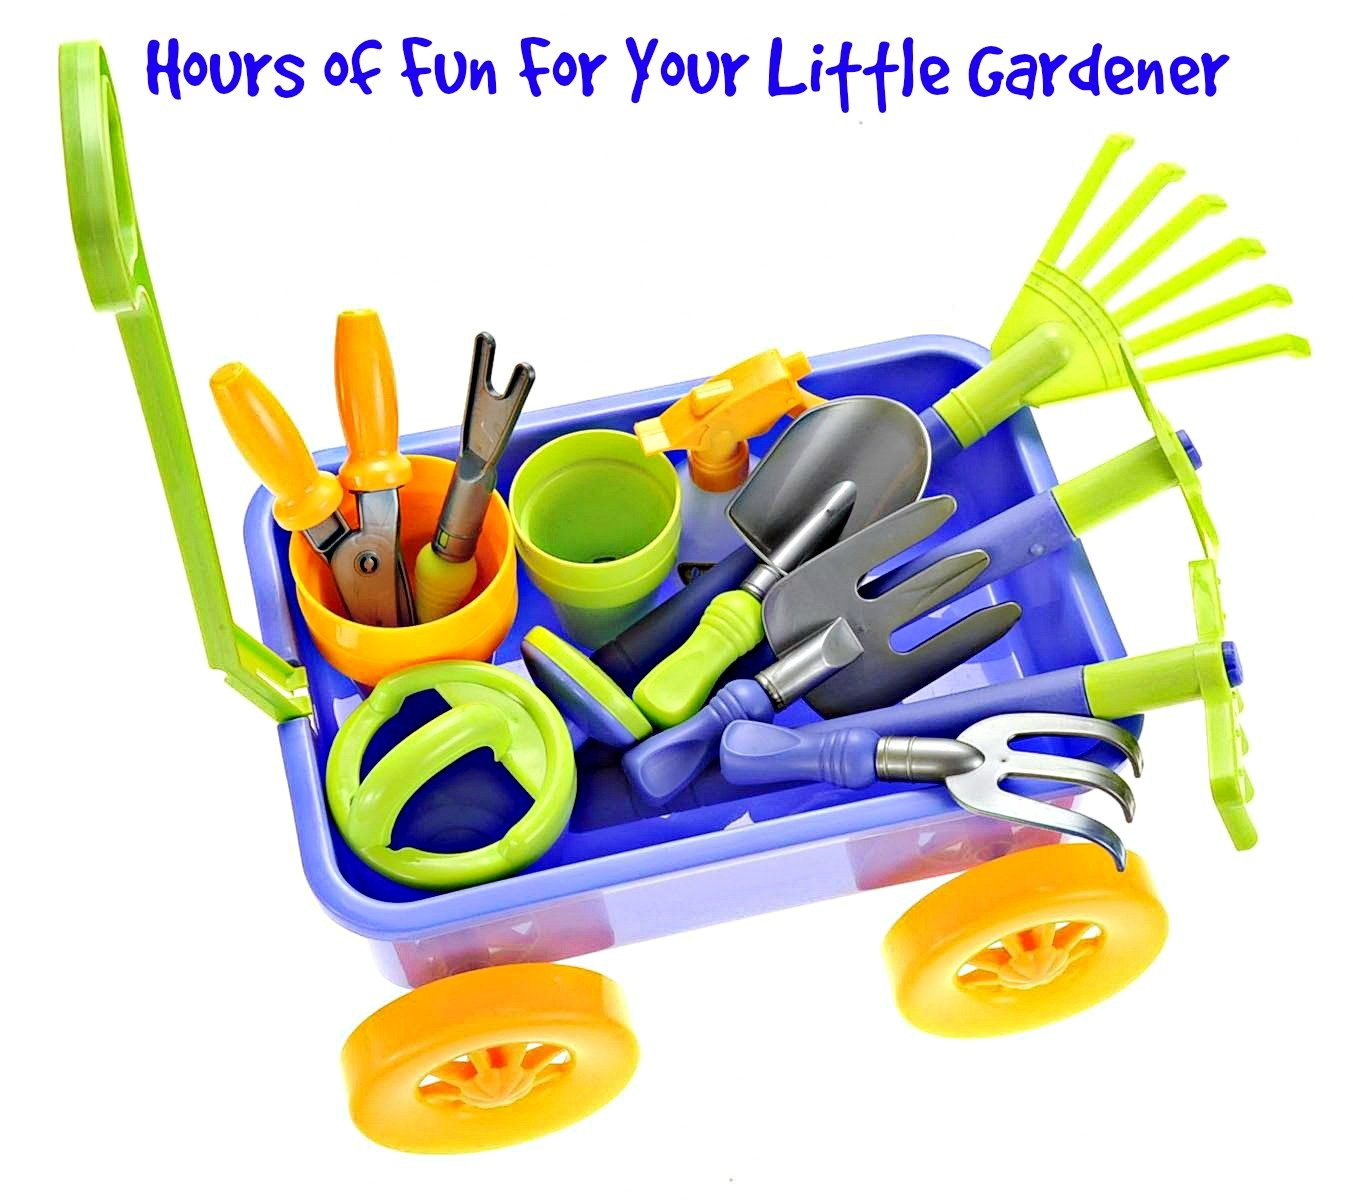 Garden Wagon & Tools Toy Set by Dimple: Premium 15-Piece Gardening Tools & Wagon Toy Set – Sturdy & Durable - Top Yard, Beach, Sand, Garden Toy - Great Christmas Gift for Kids & Toddlers